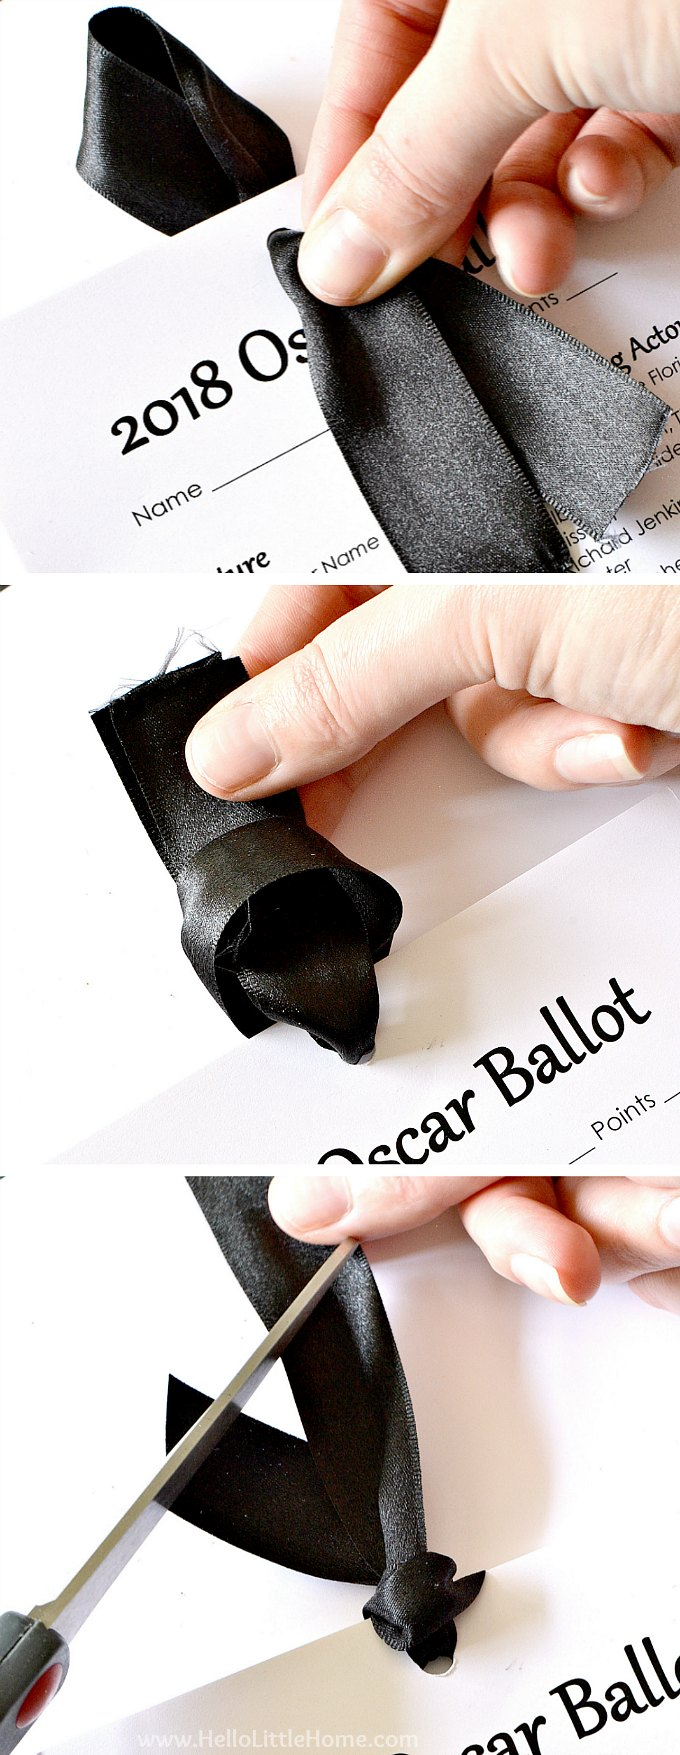 Tying the Oscar nominations printable ballots together with black ribbon.